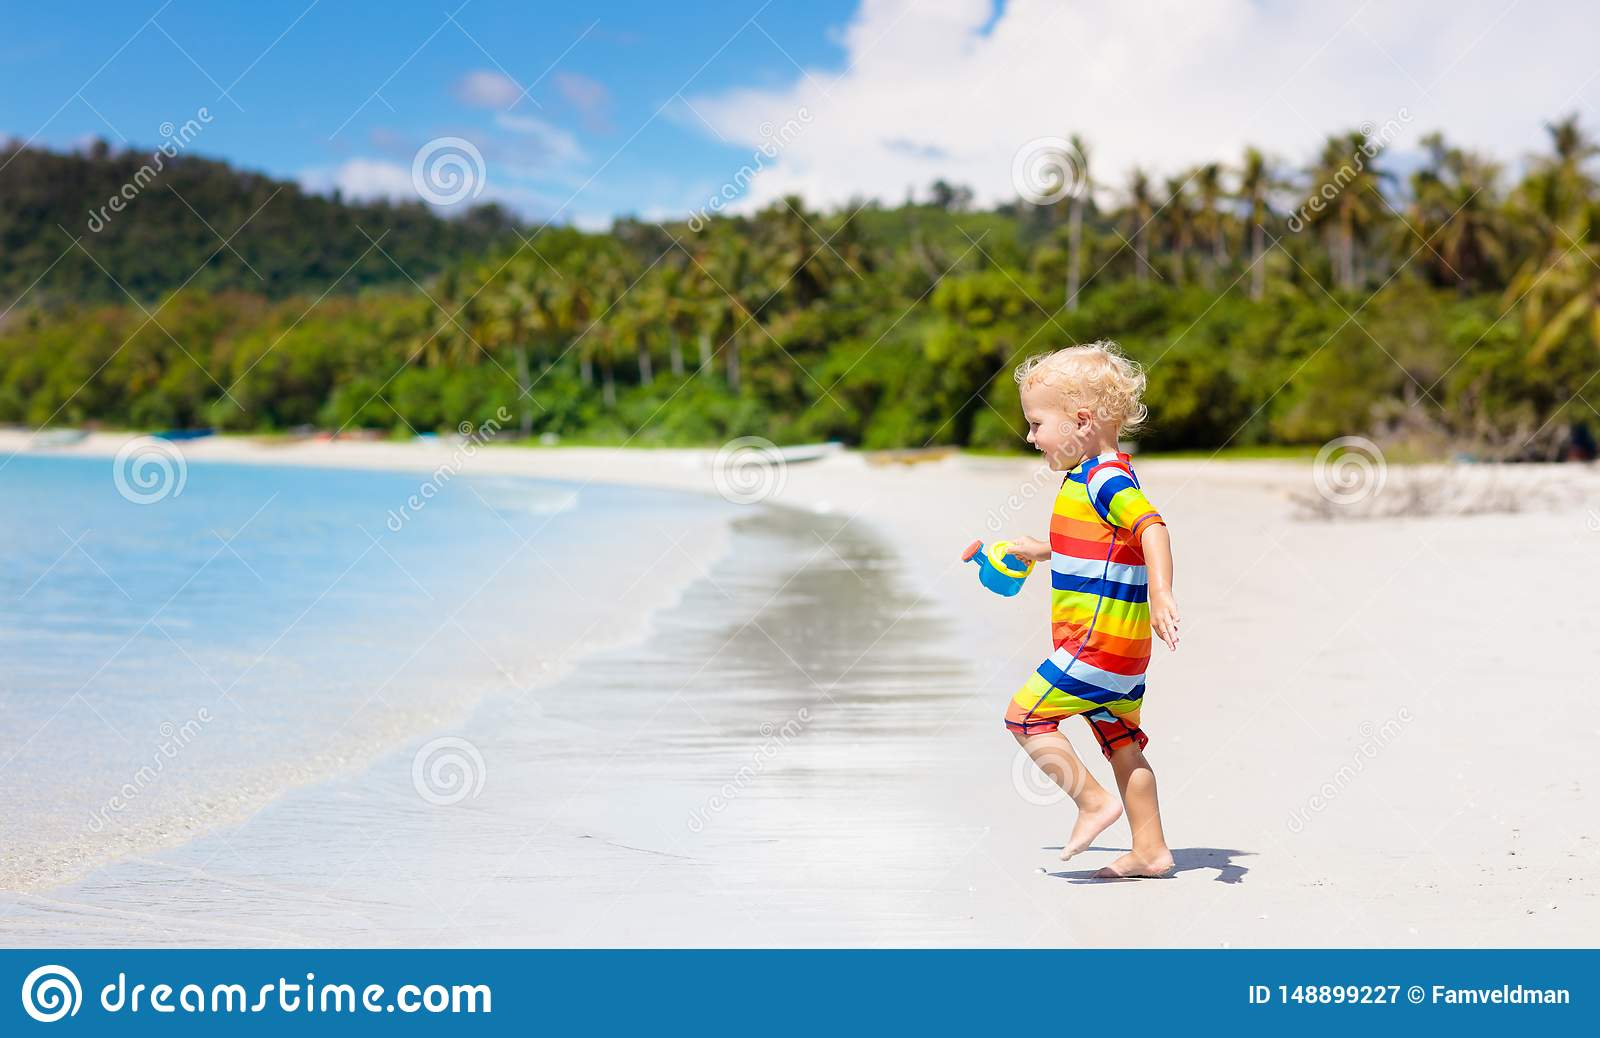 Kids play on tropical beach. Sand and water toy